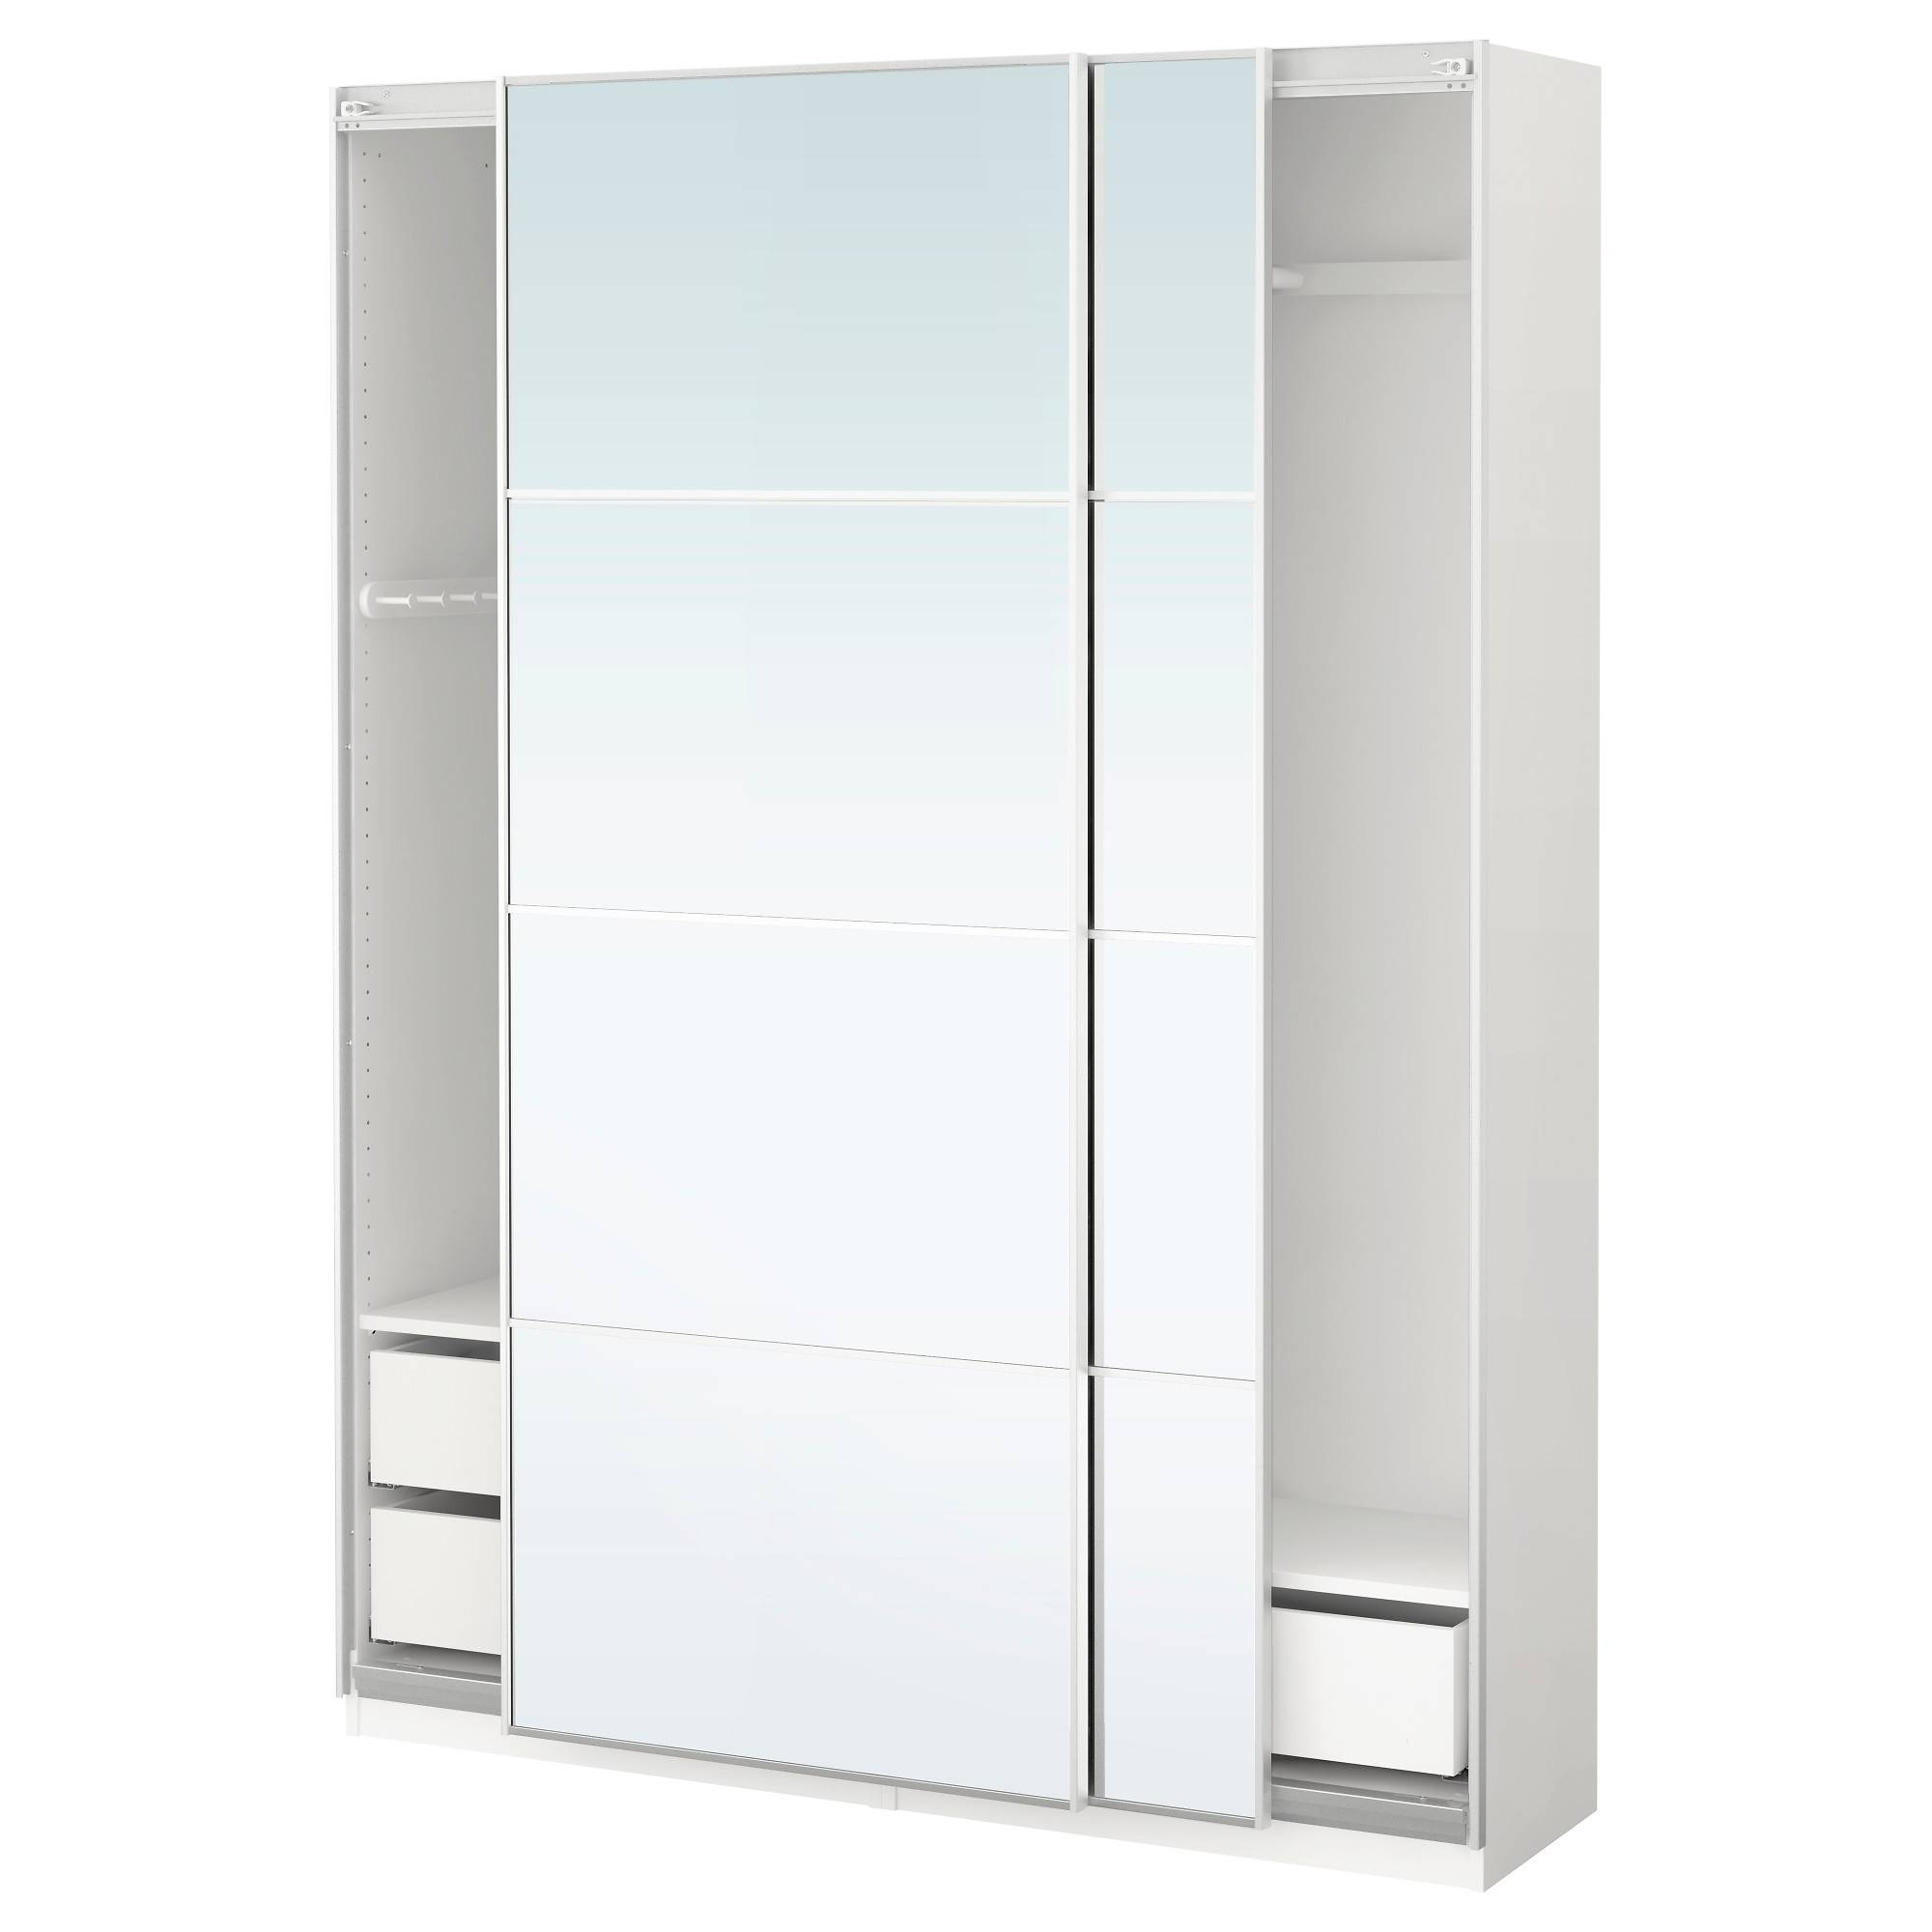 Wardrobes, Armoires & Closets - Ikea regarding Double Wardrobes With Mirror (Image 15 of 15)